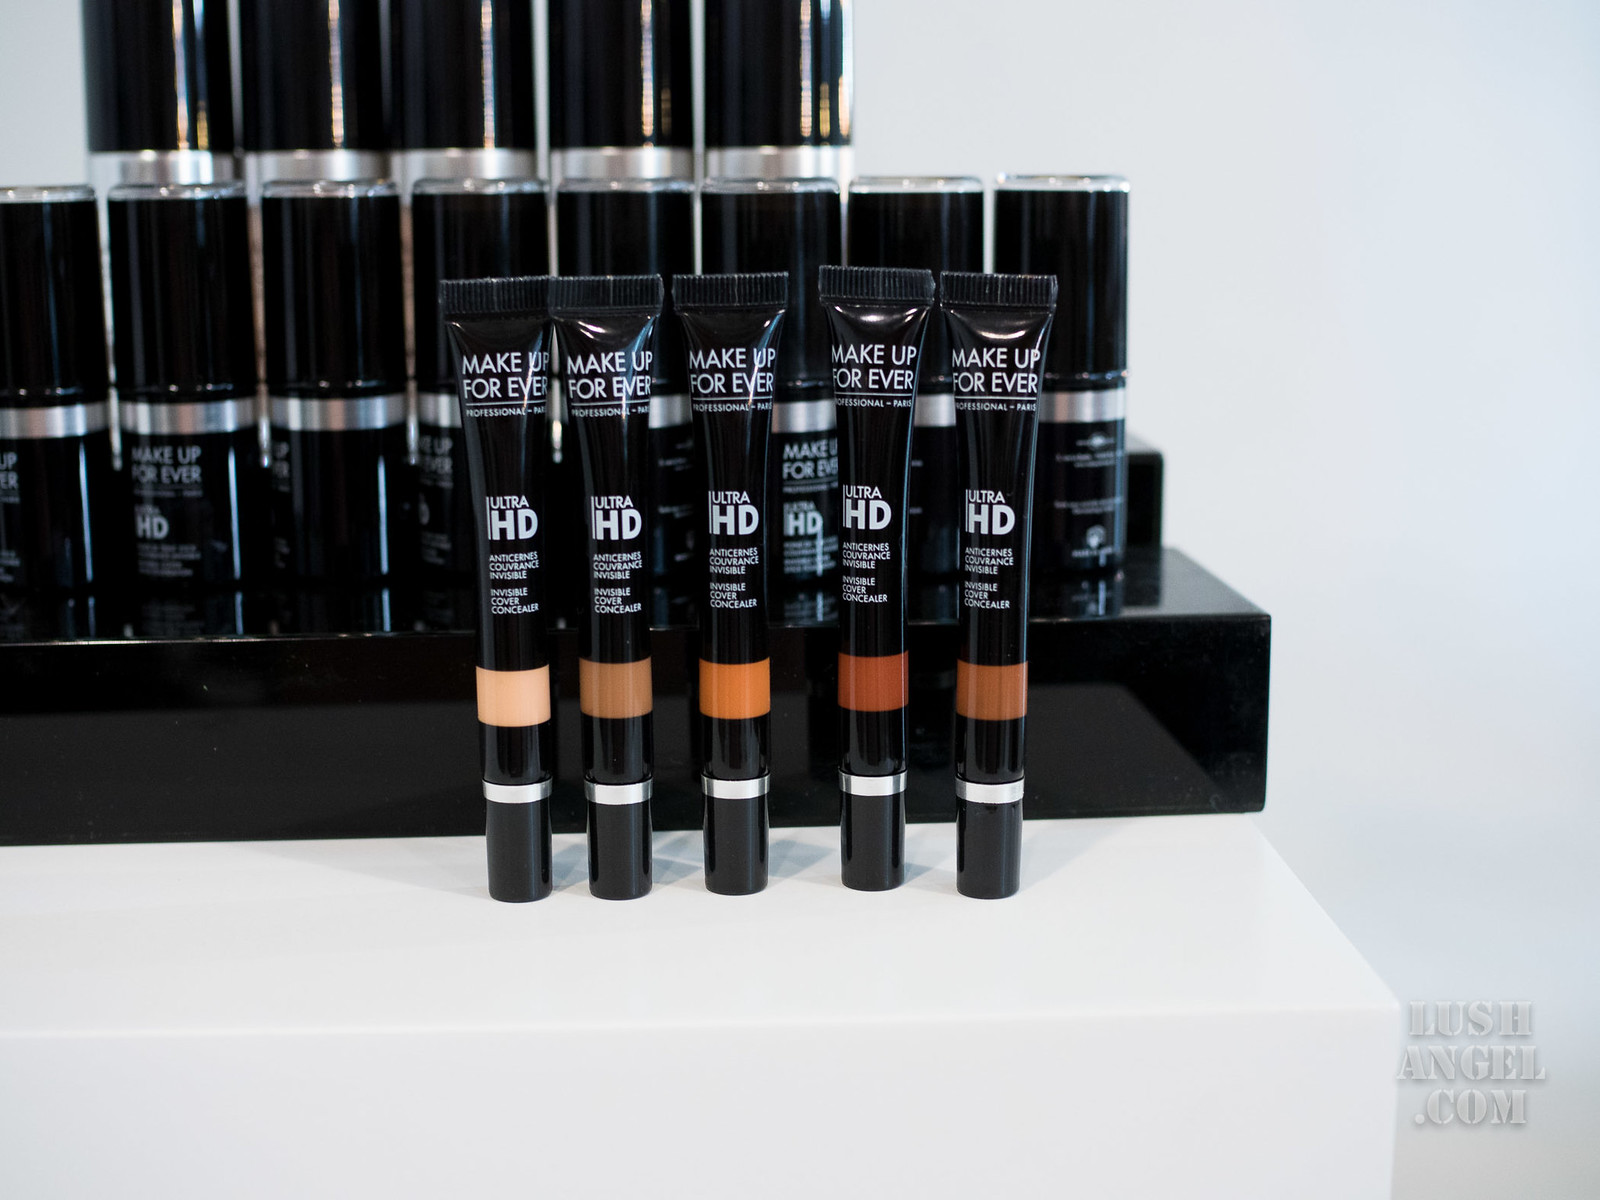 make-up-for-ever-ultra-hd-concealer